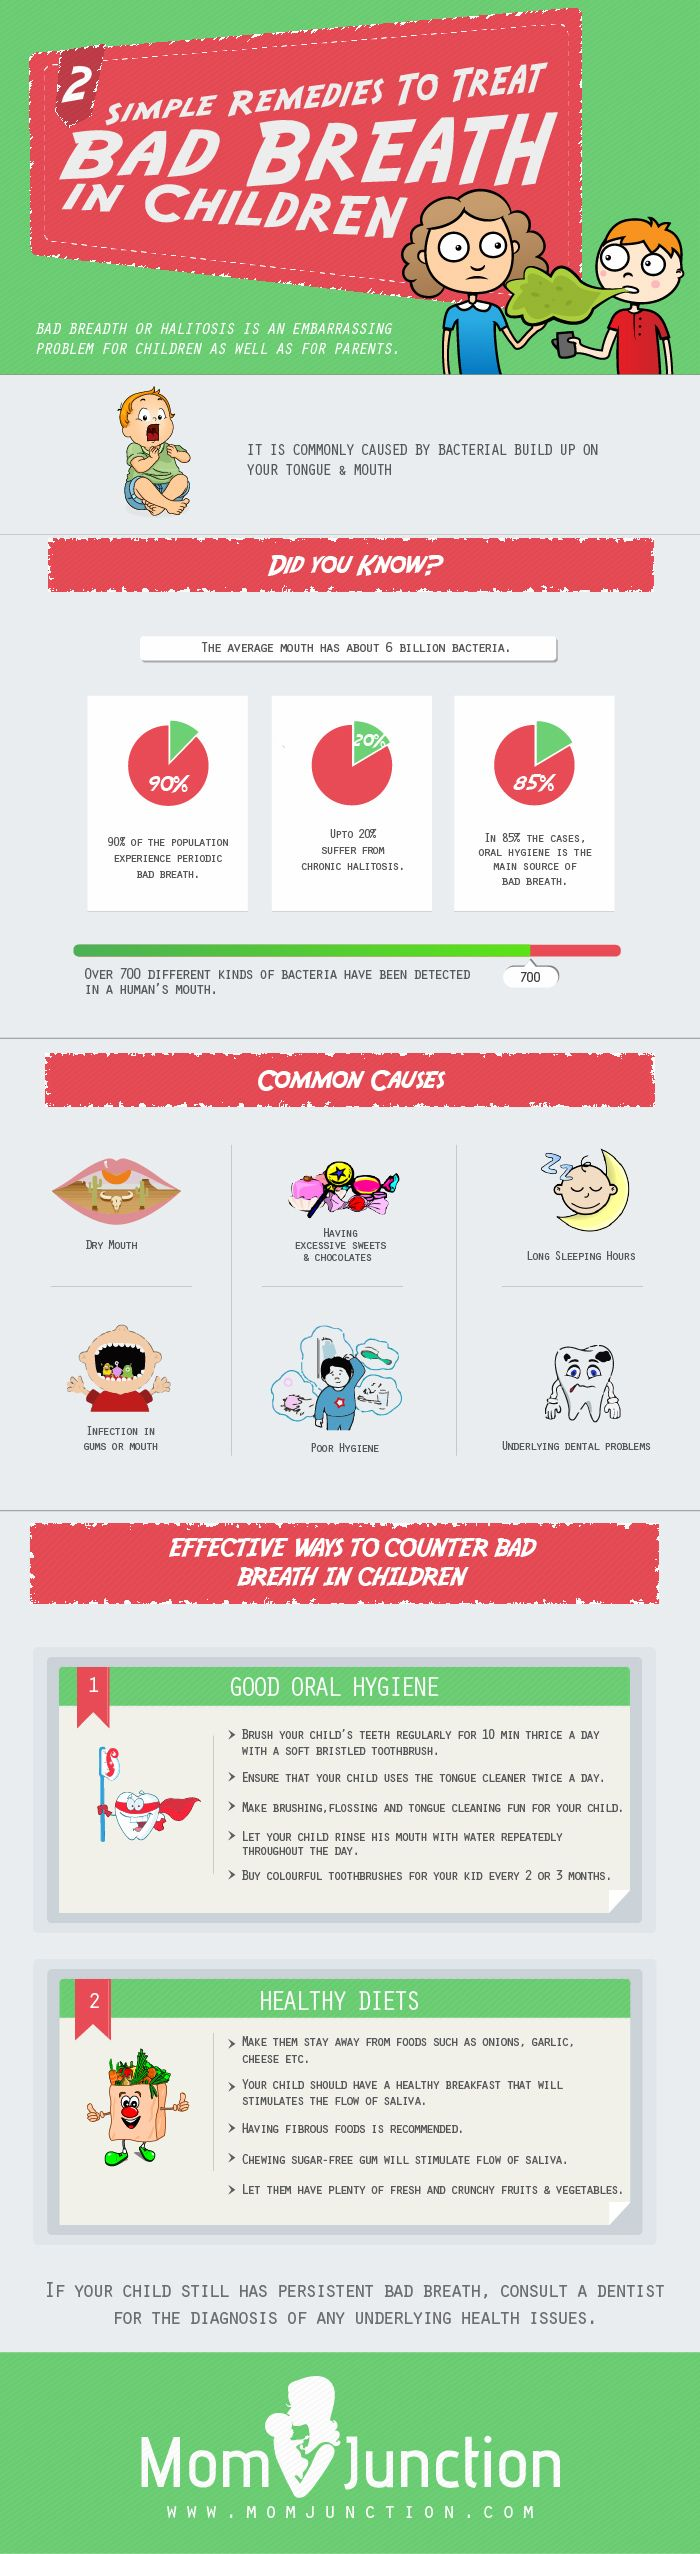 What Causes Bad Breath in Children #infographic #Health